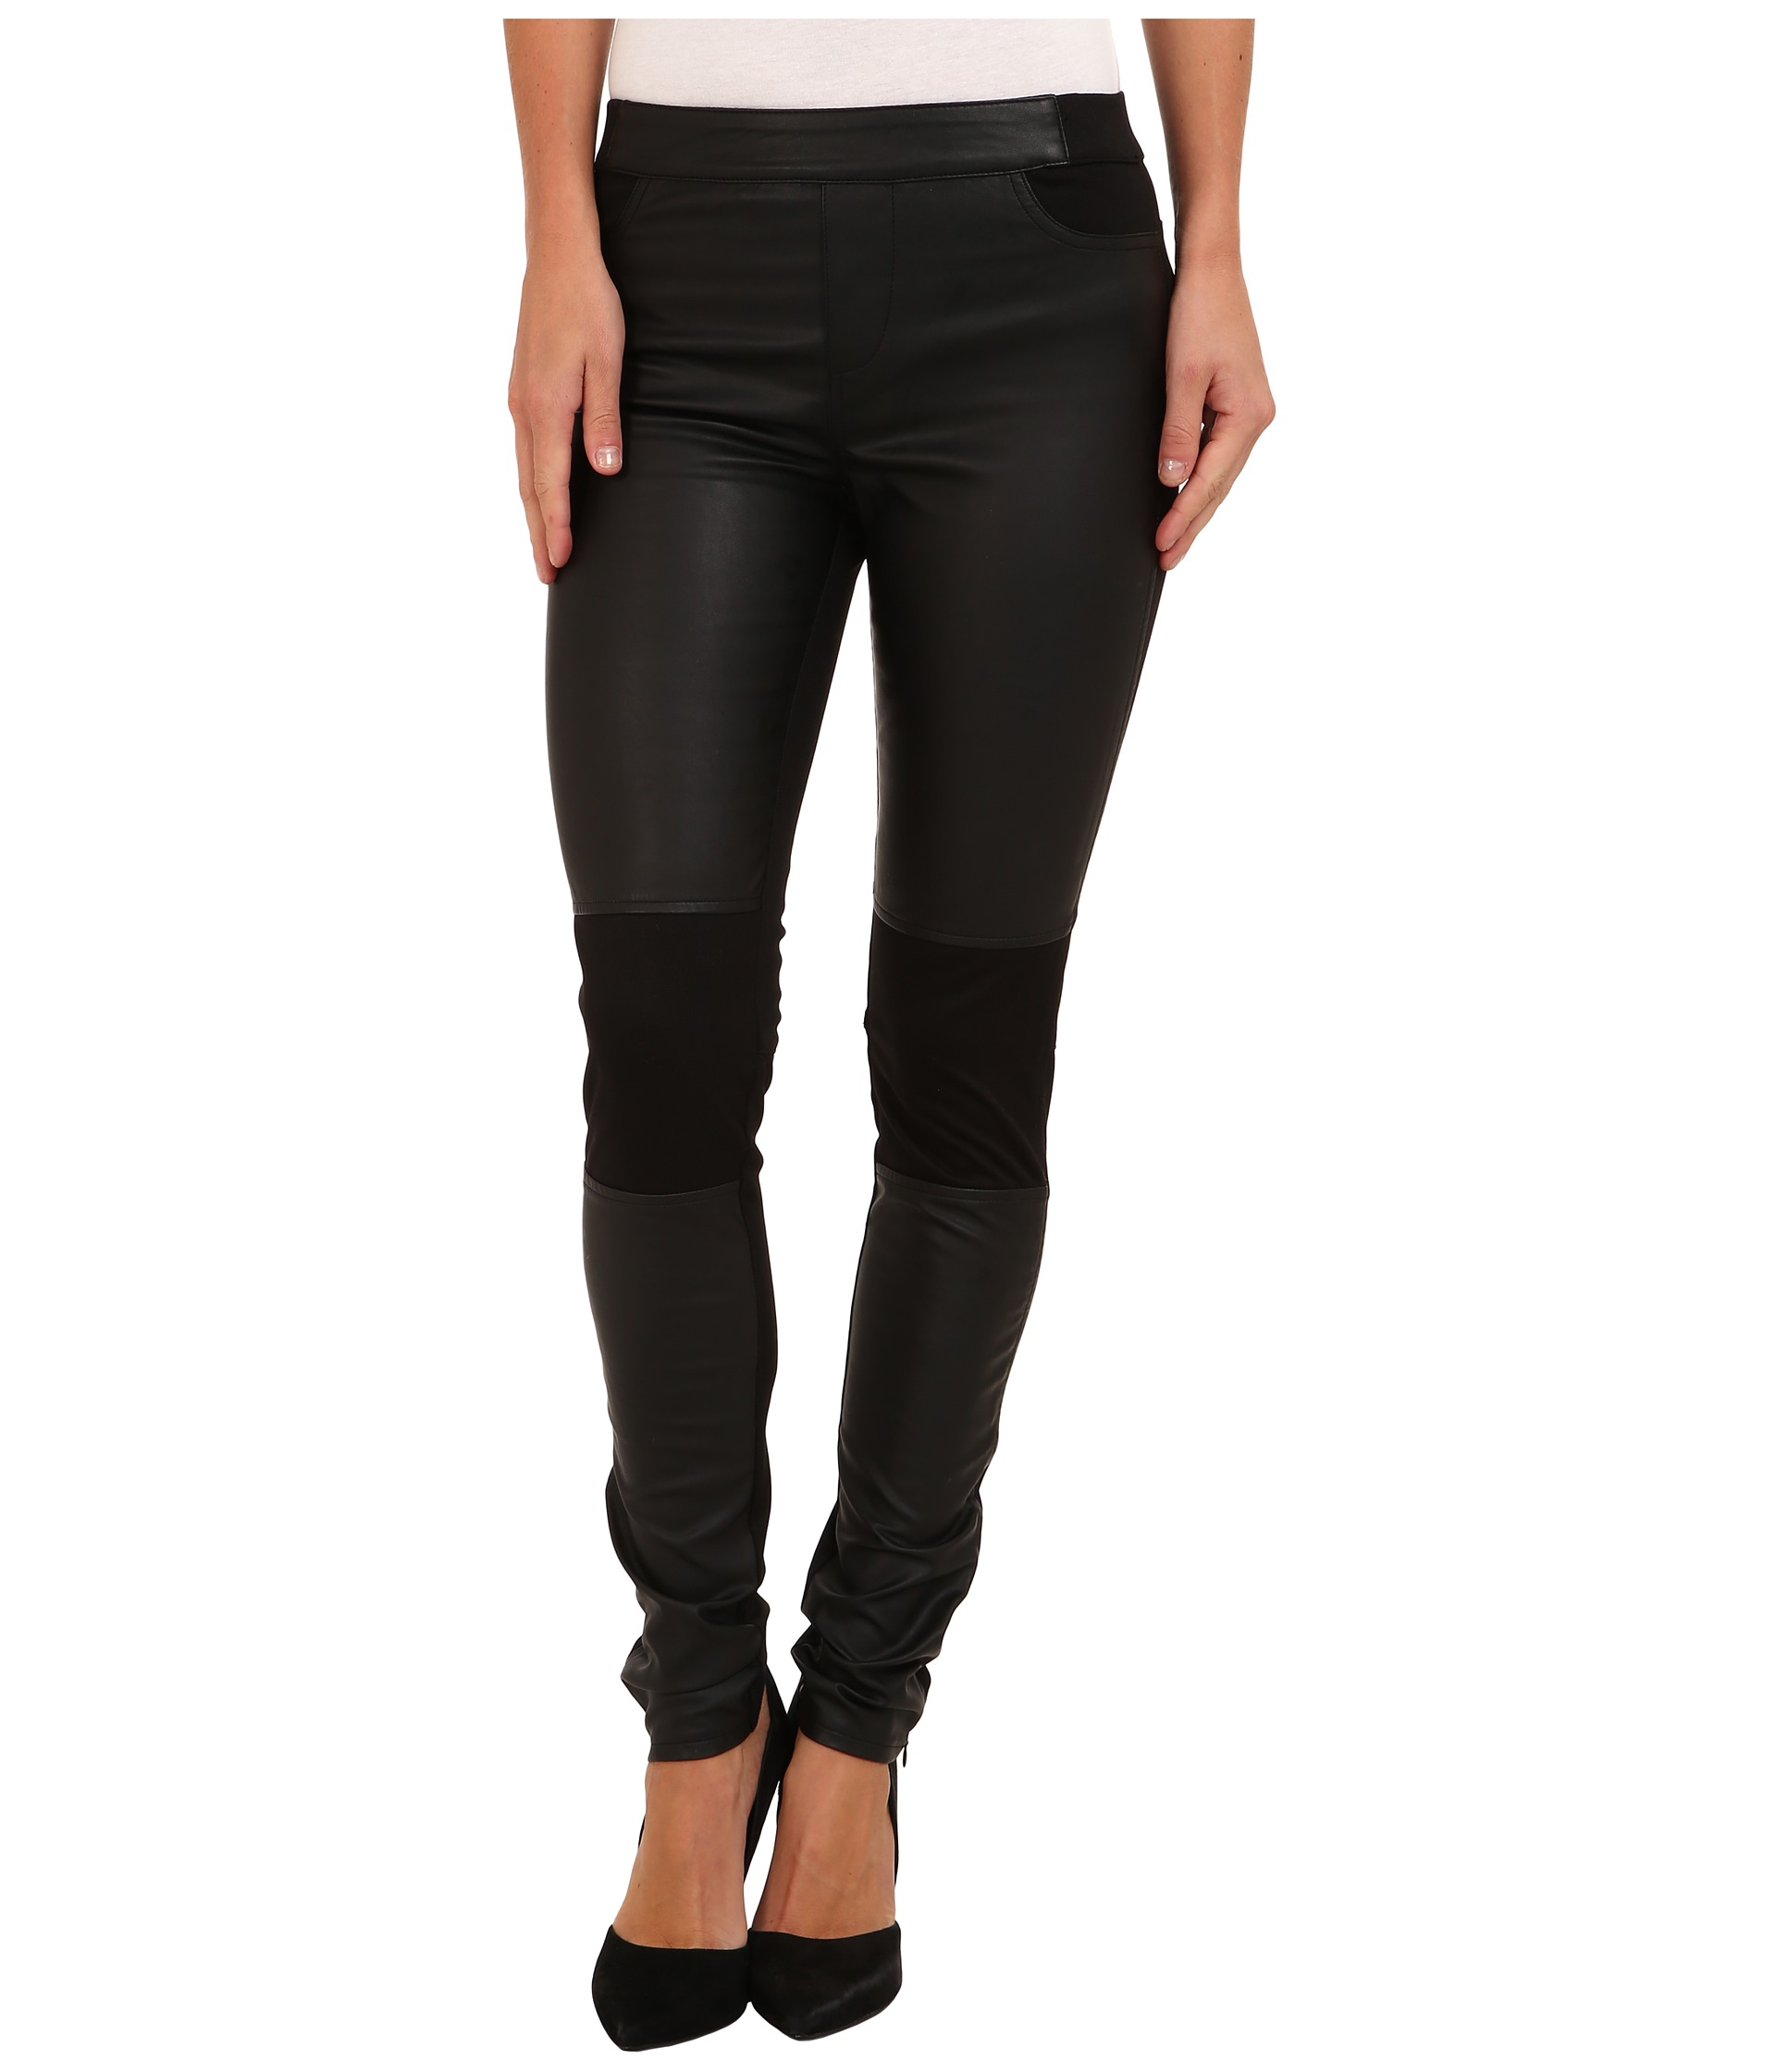 calvin klein jeans panelled texture legging black shipped free at zappos. Black Bedroom Furniture Sets. Home Design Ideas